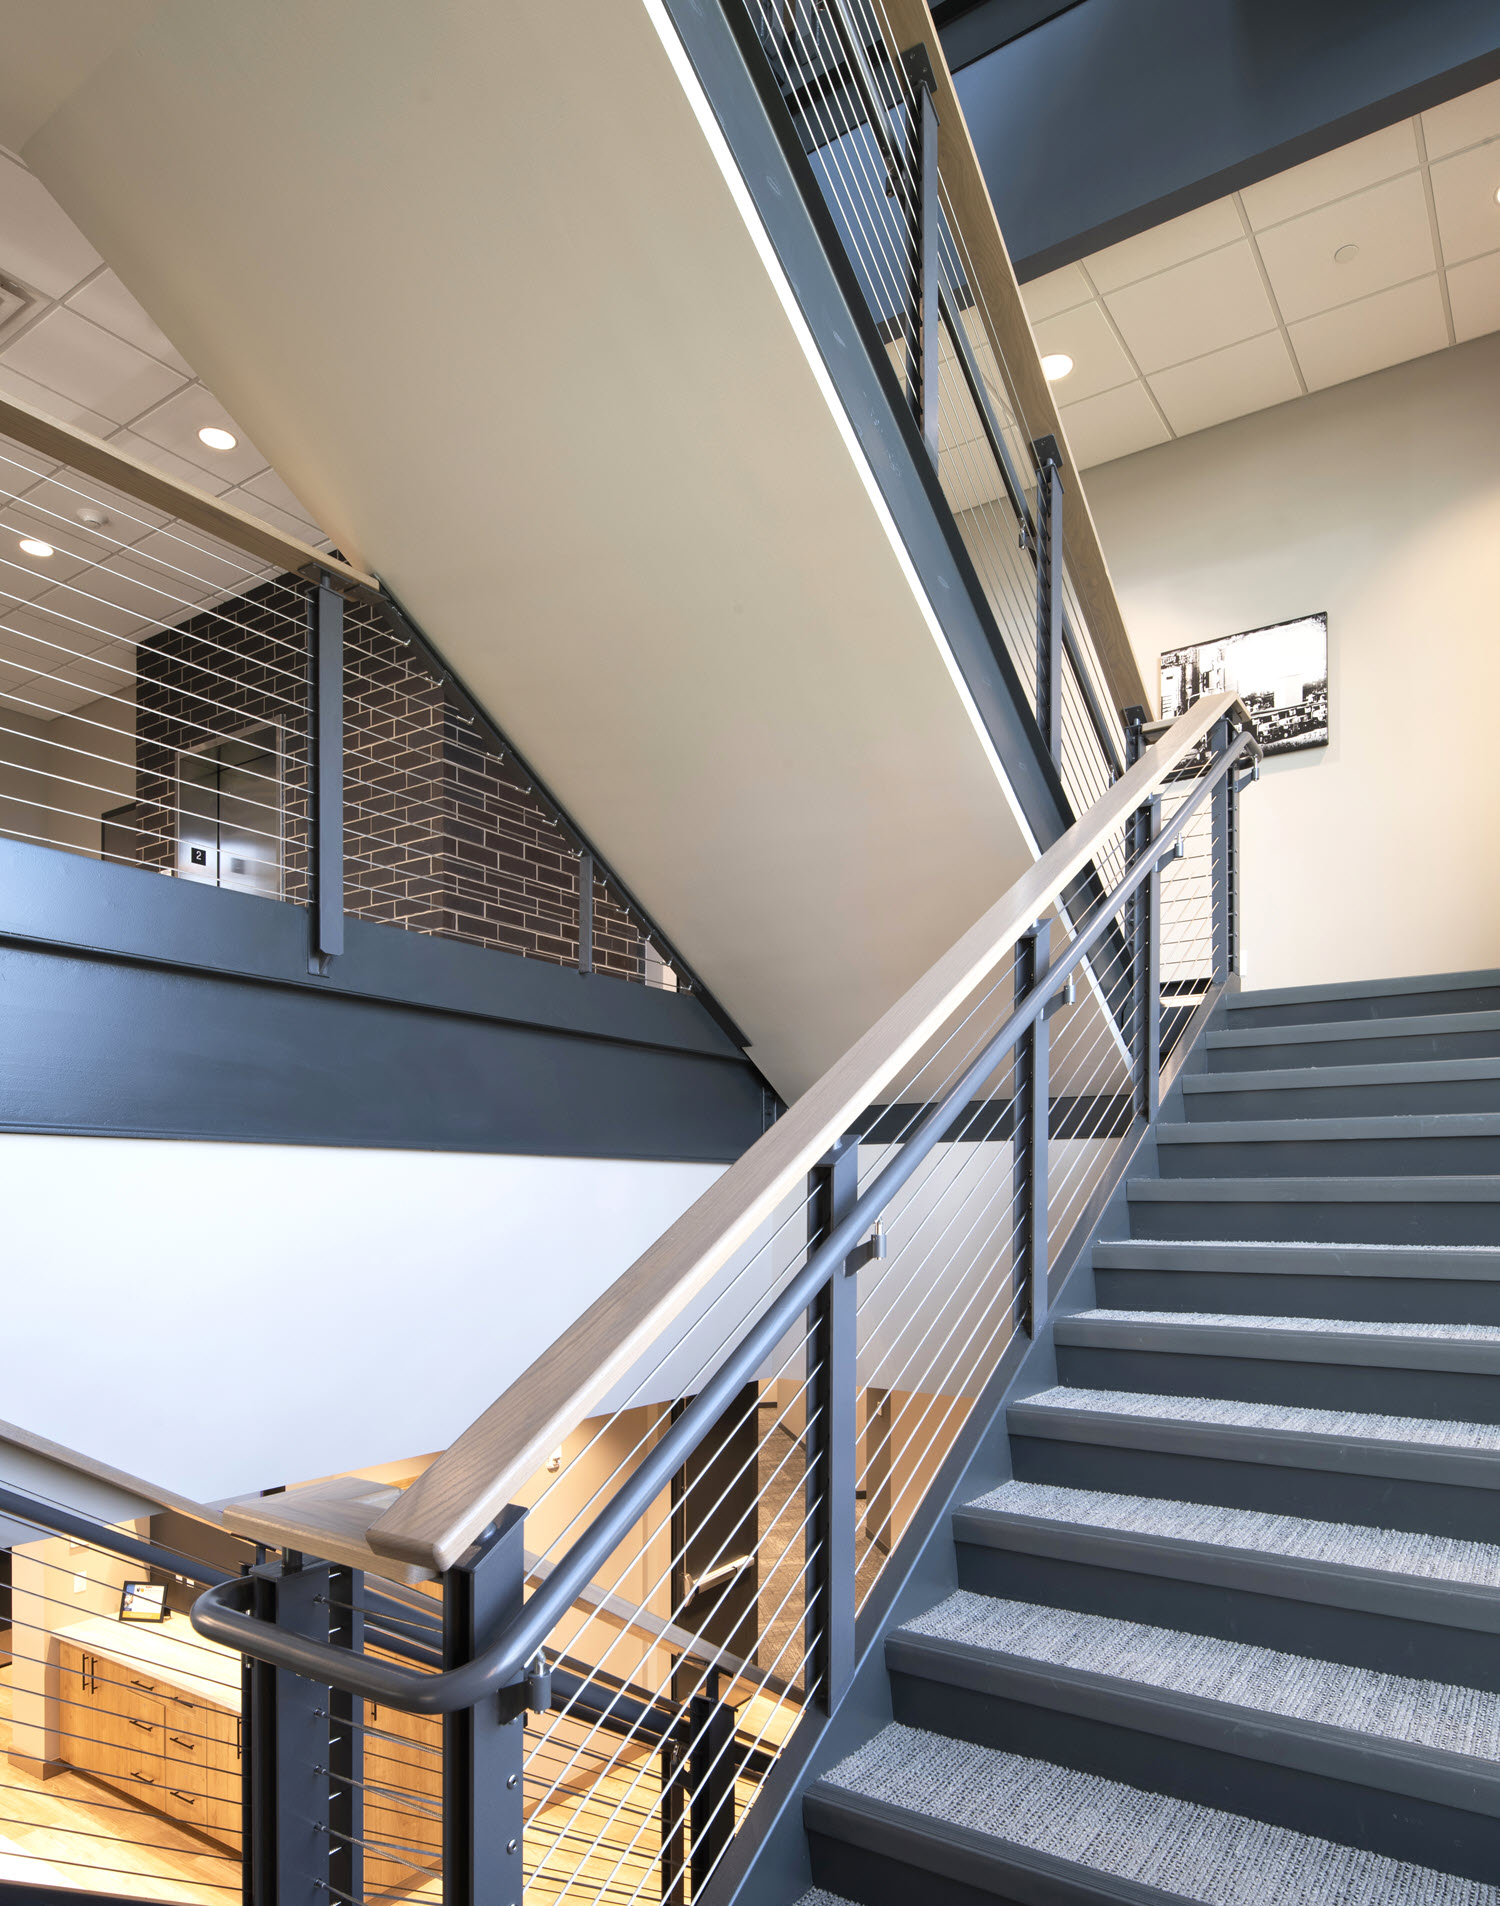 Interior office staircase with ADA handrails